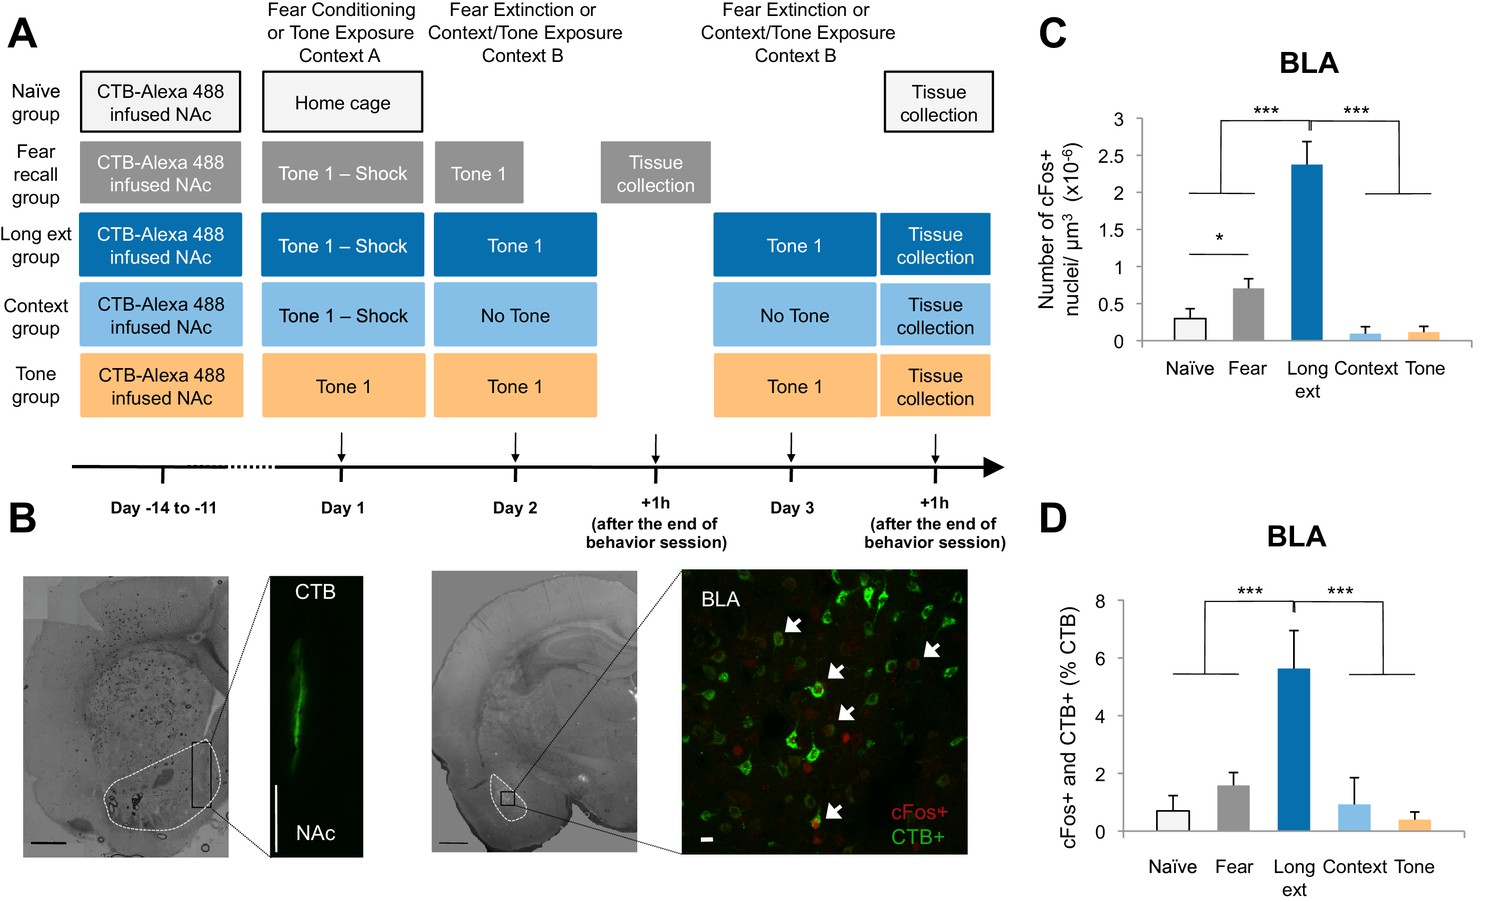 Amygdala Ventral Striatum Circuit Activation Decreases Long Term Between Unilateral Circuits And Bilateral Its Functions The Bla Nac Circuitry Is Recruited During Extinction Of Fear